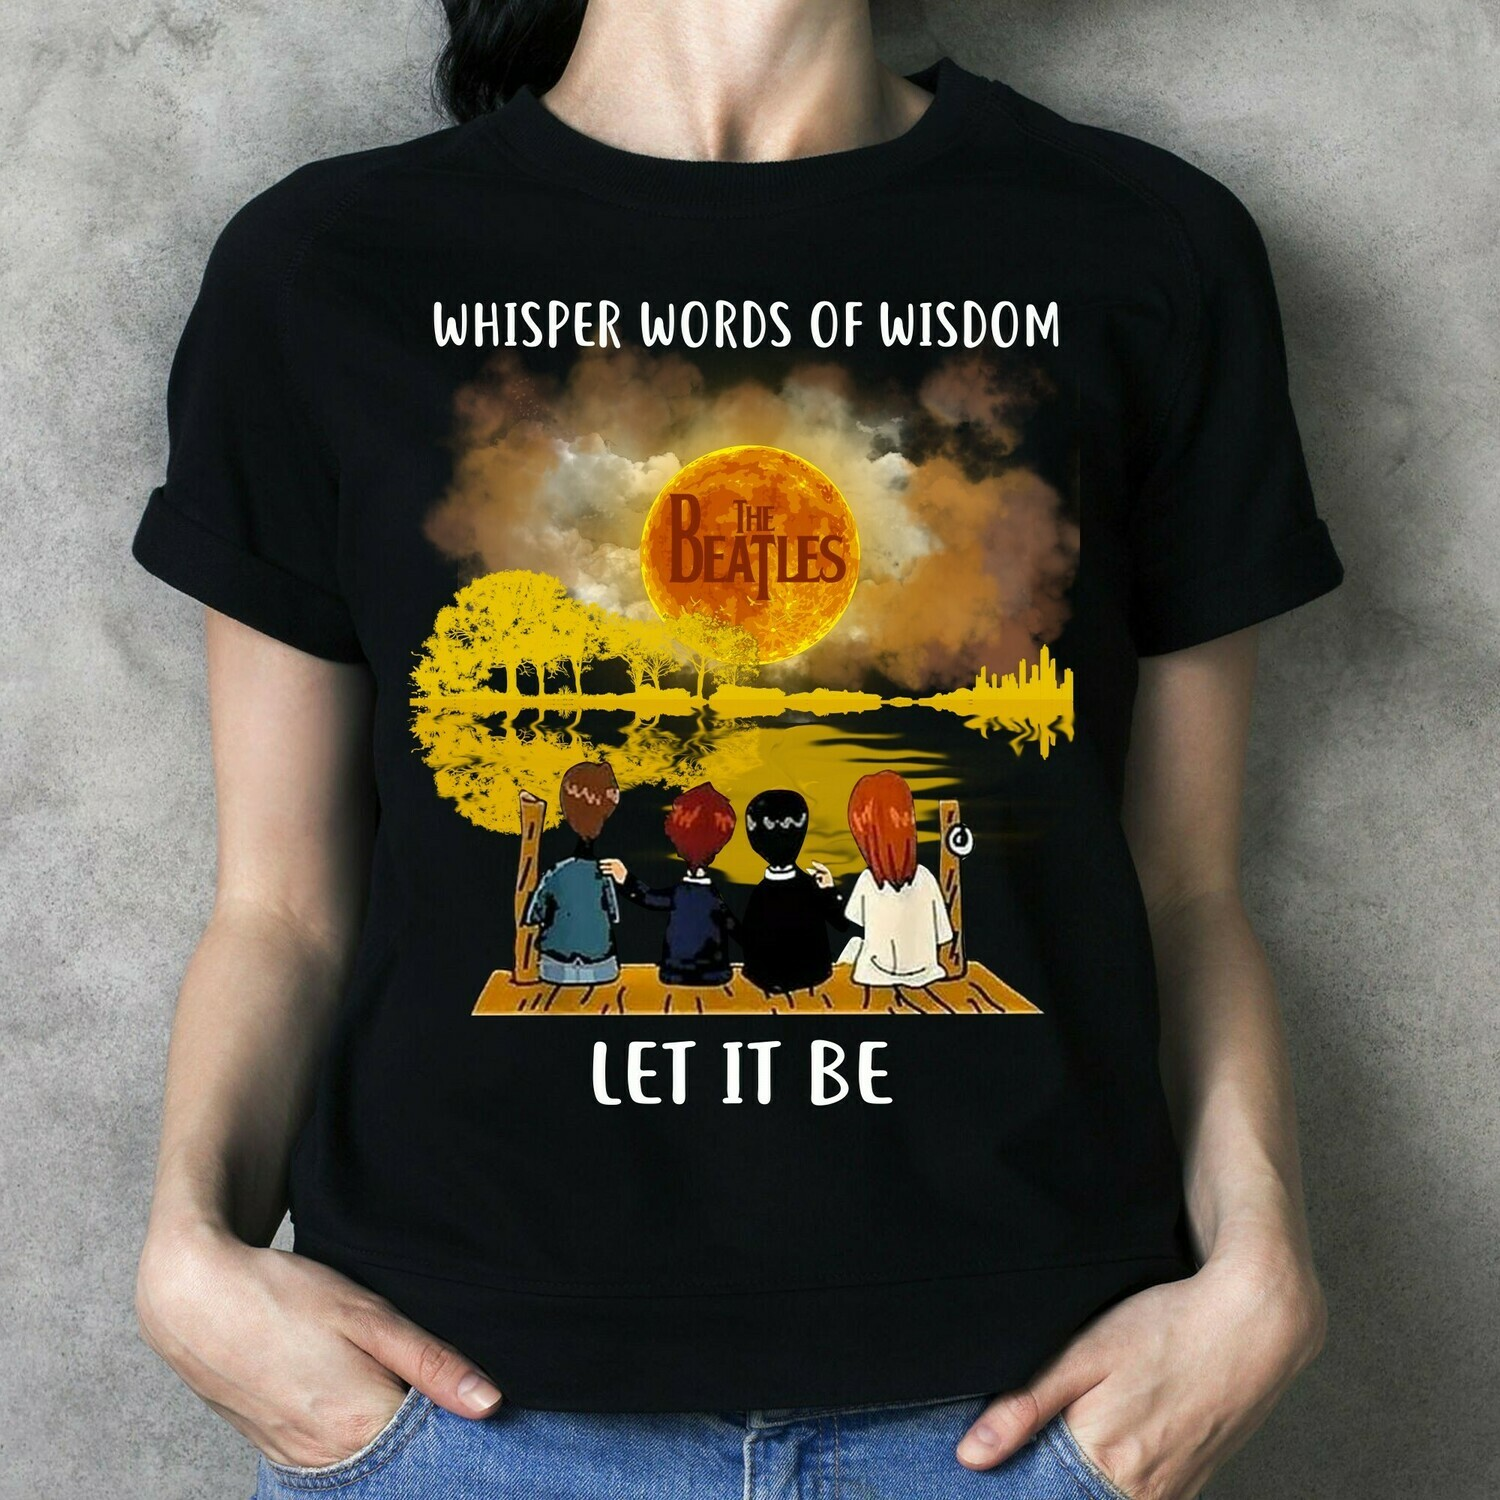 Whisper word of wisdom let it be The beatles 60th anniversary 1960 - 2020 thank you for the memories Classic Rock Band Legend Fan  T-Shirt Hoodie Sweatshirt Sweater Tee Kids Youth Gifts Jolly Family